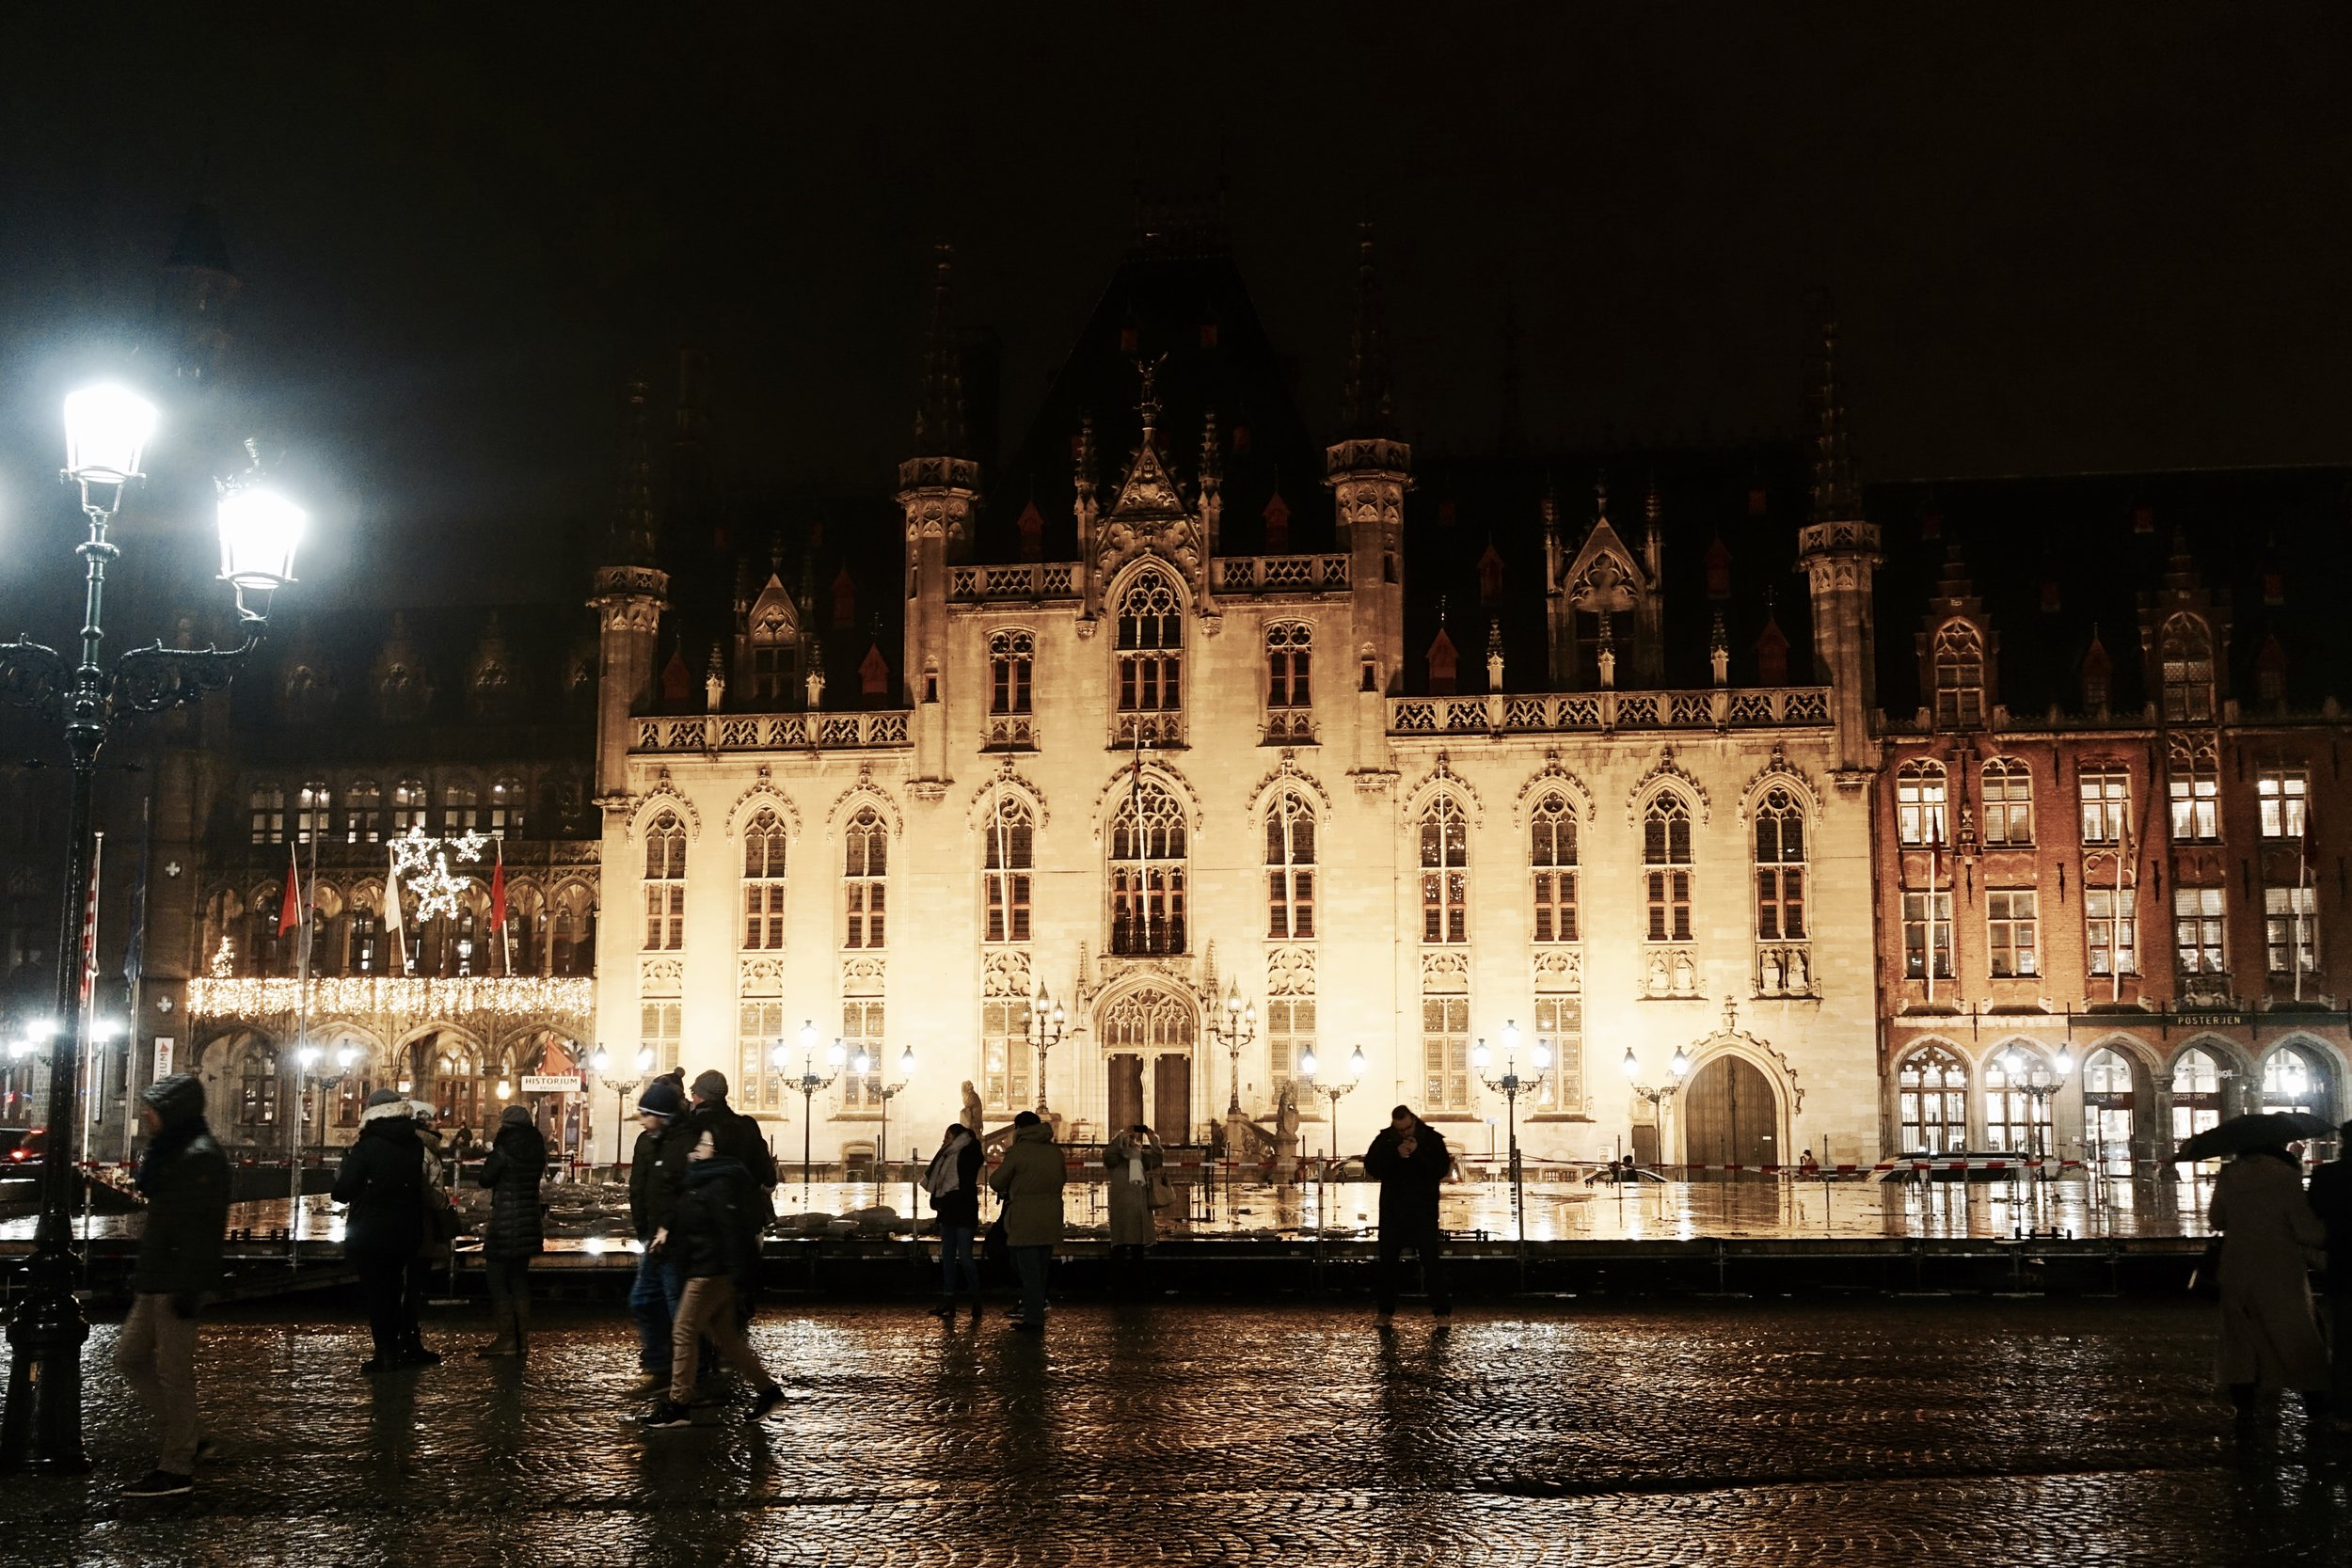 The Gothic Revival architecture of Provincial Hof, overlooking the main Markt square in Bruges